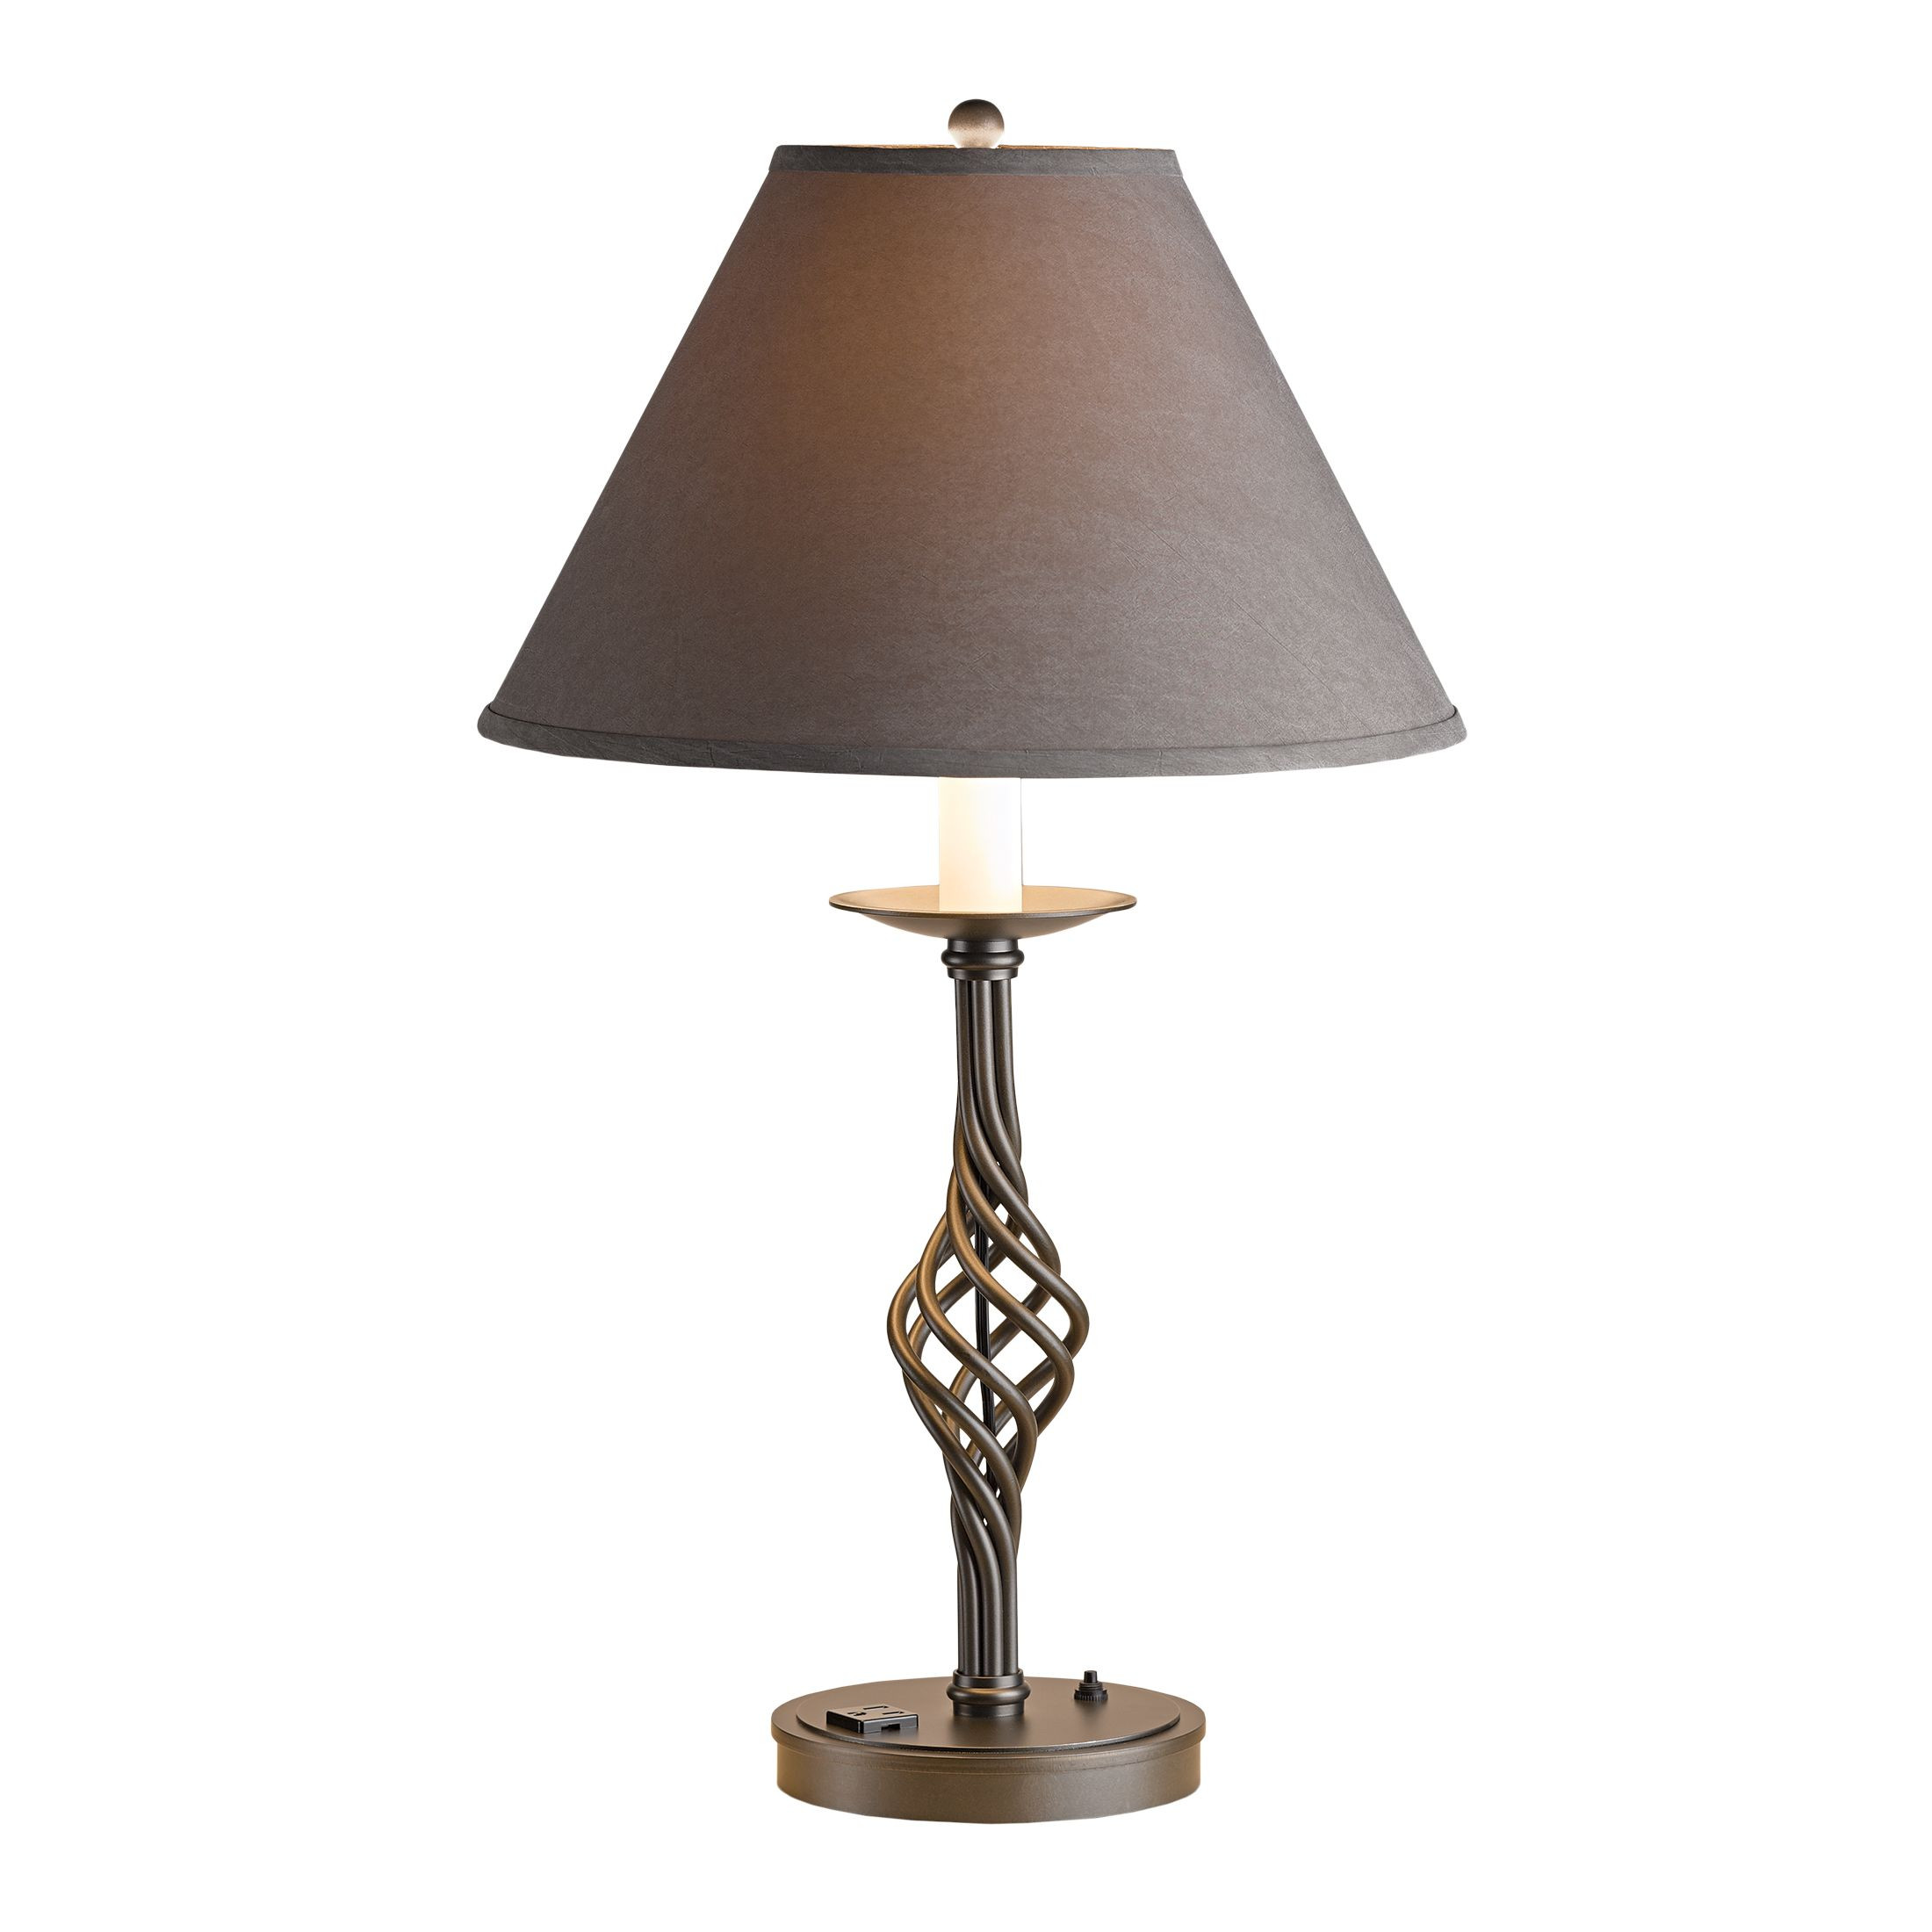 chinese vase lamp base of forged leaves and vase table lamp hubbardton forge intended for thumbnail for twist basket large table lamp